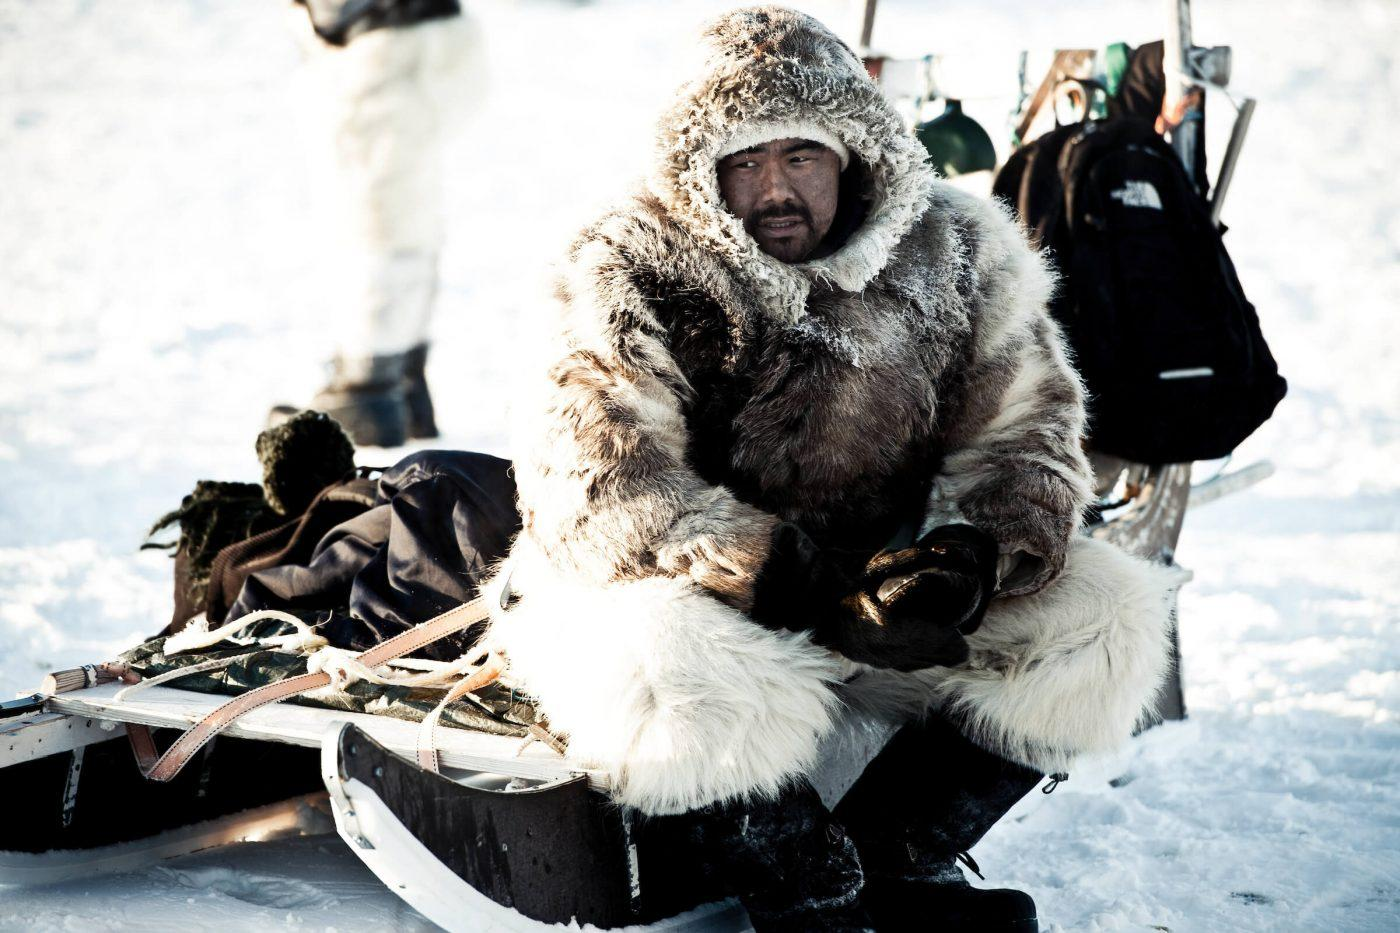 A dog sled driver from Ilulissat wearing fur and skin clothes in Greenland, by Andre Schoenherr